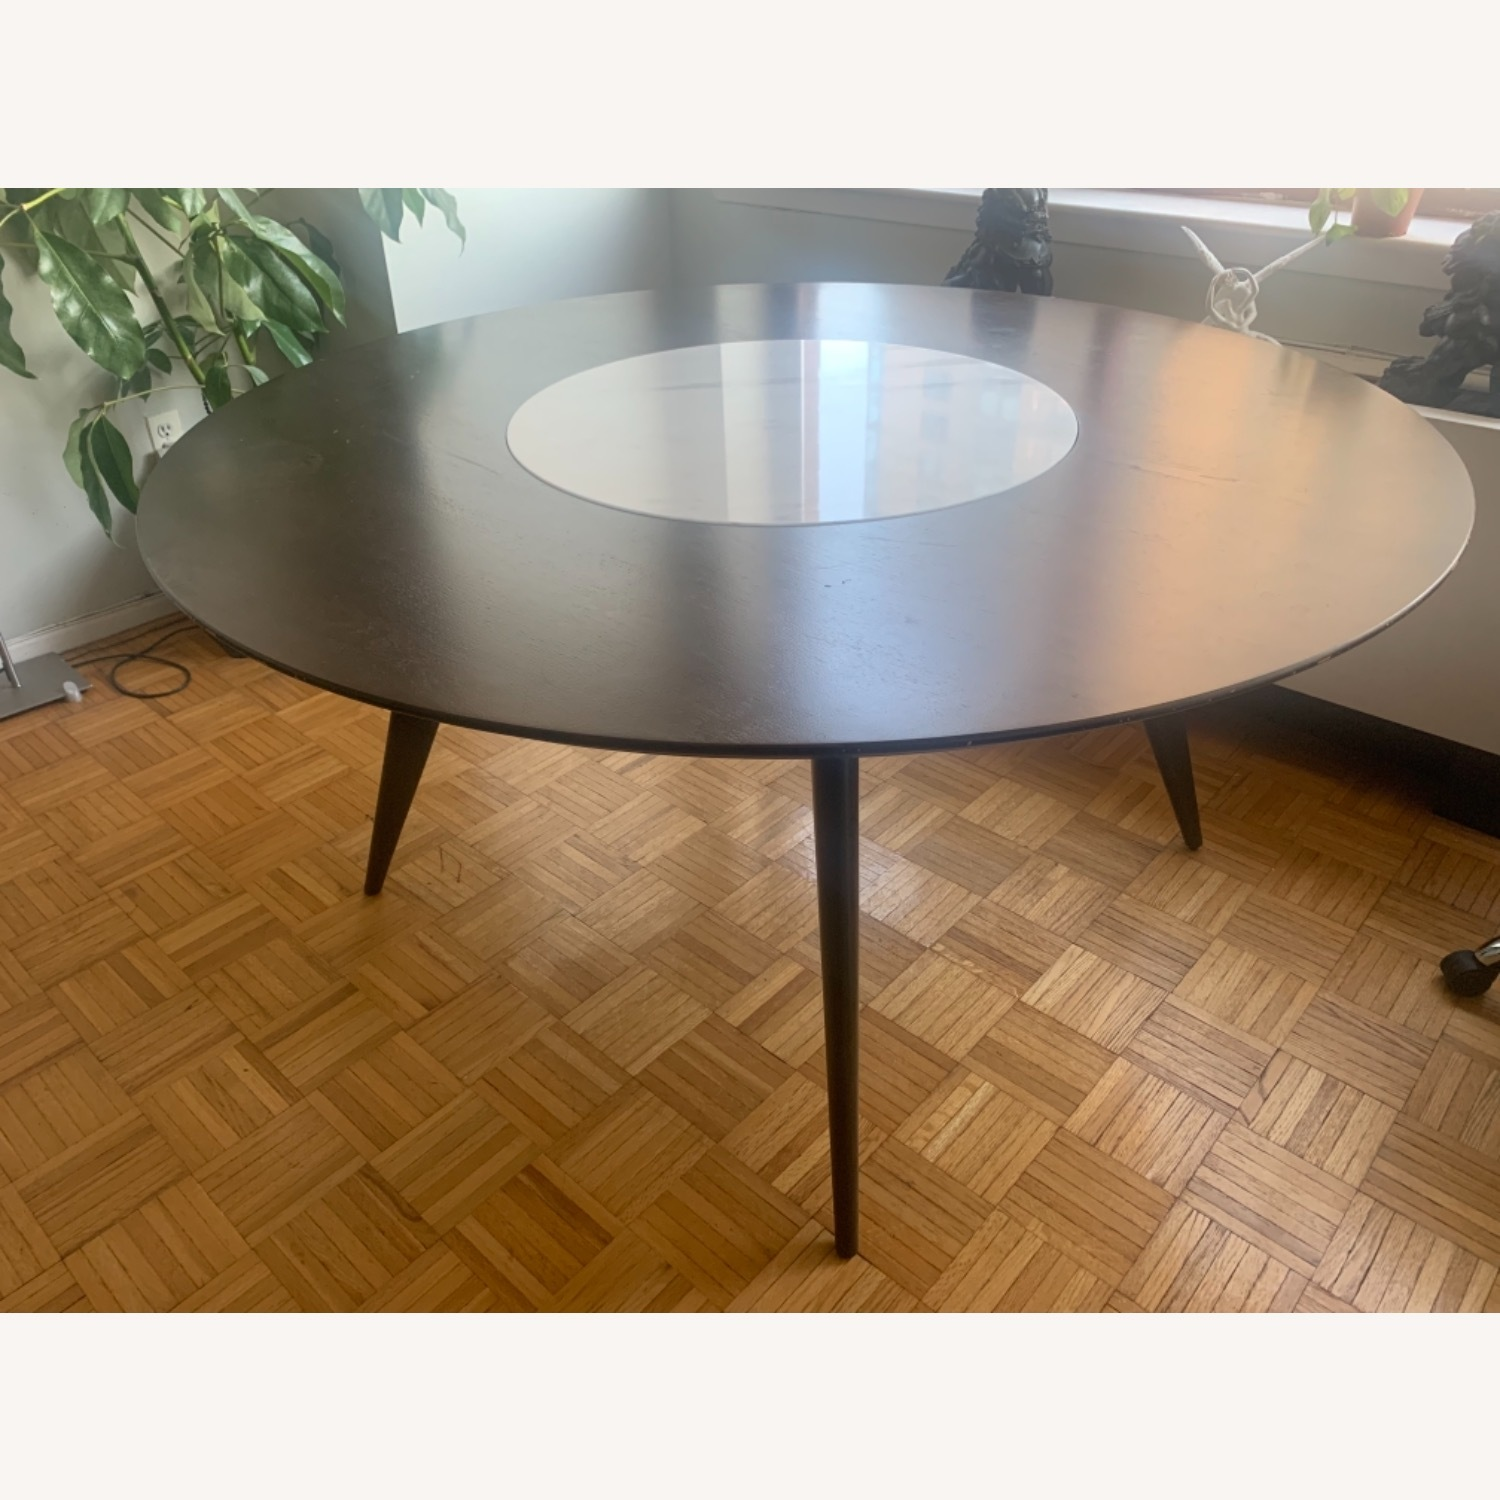 West Elm Turner Lazy Susan Dining Table - image-2